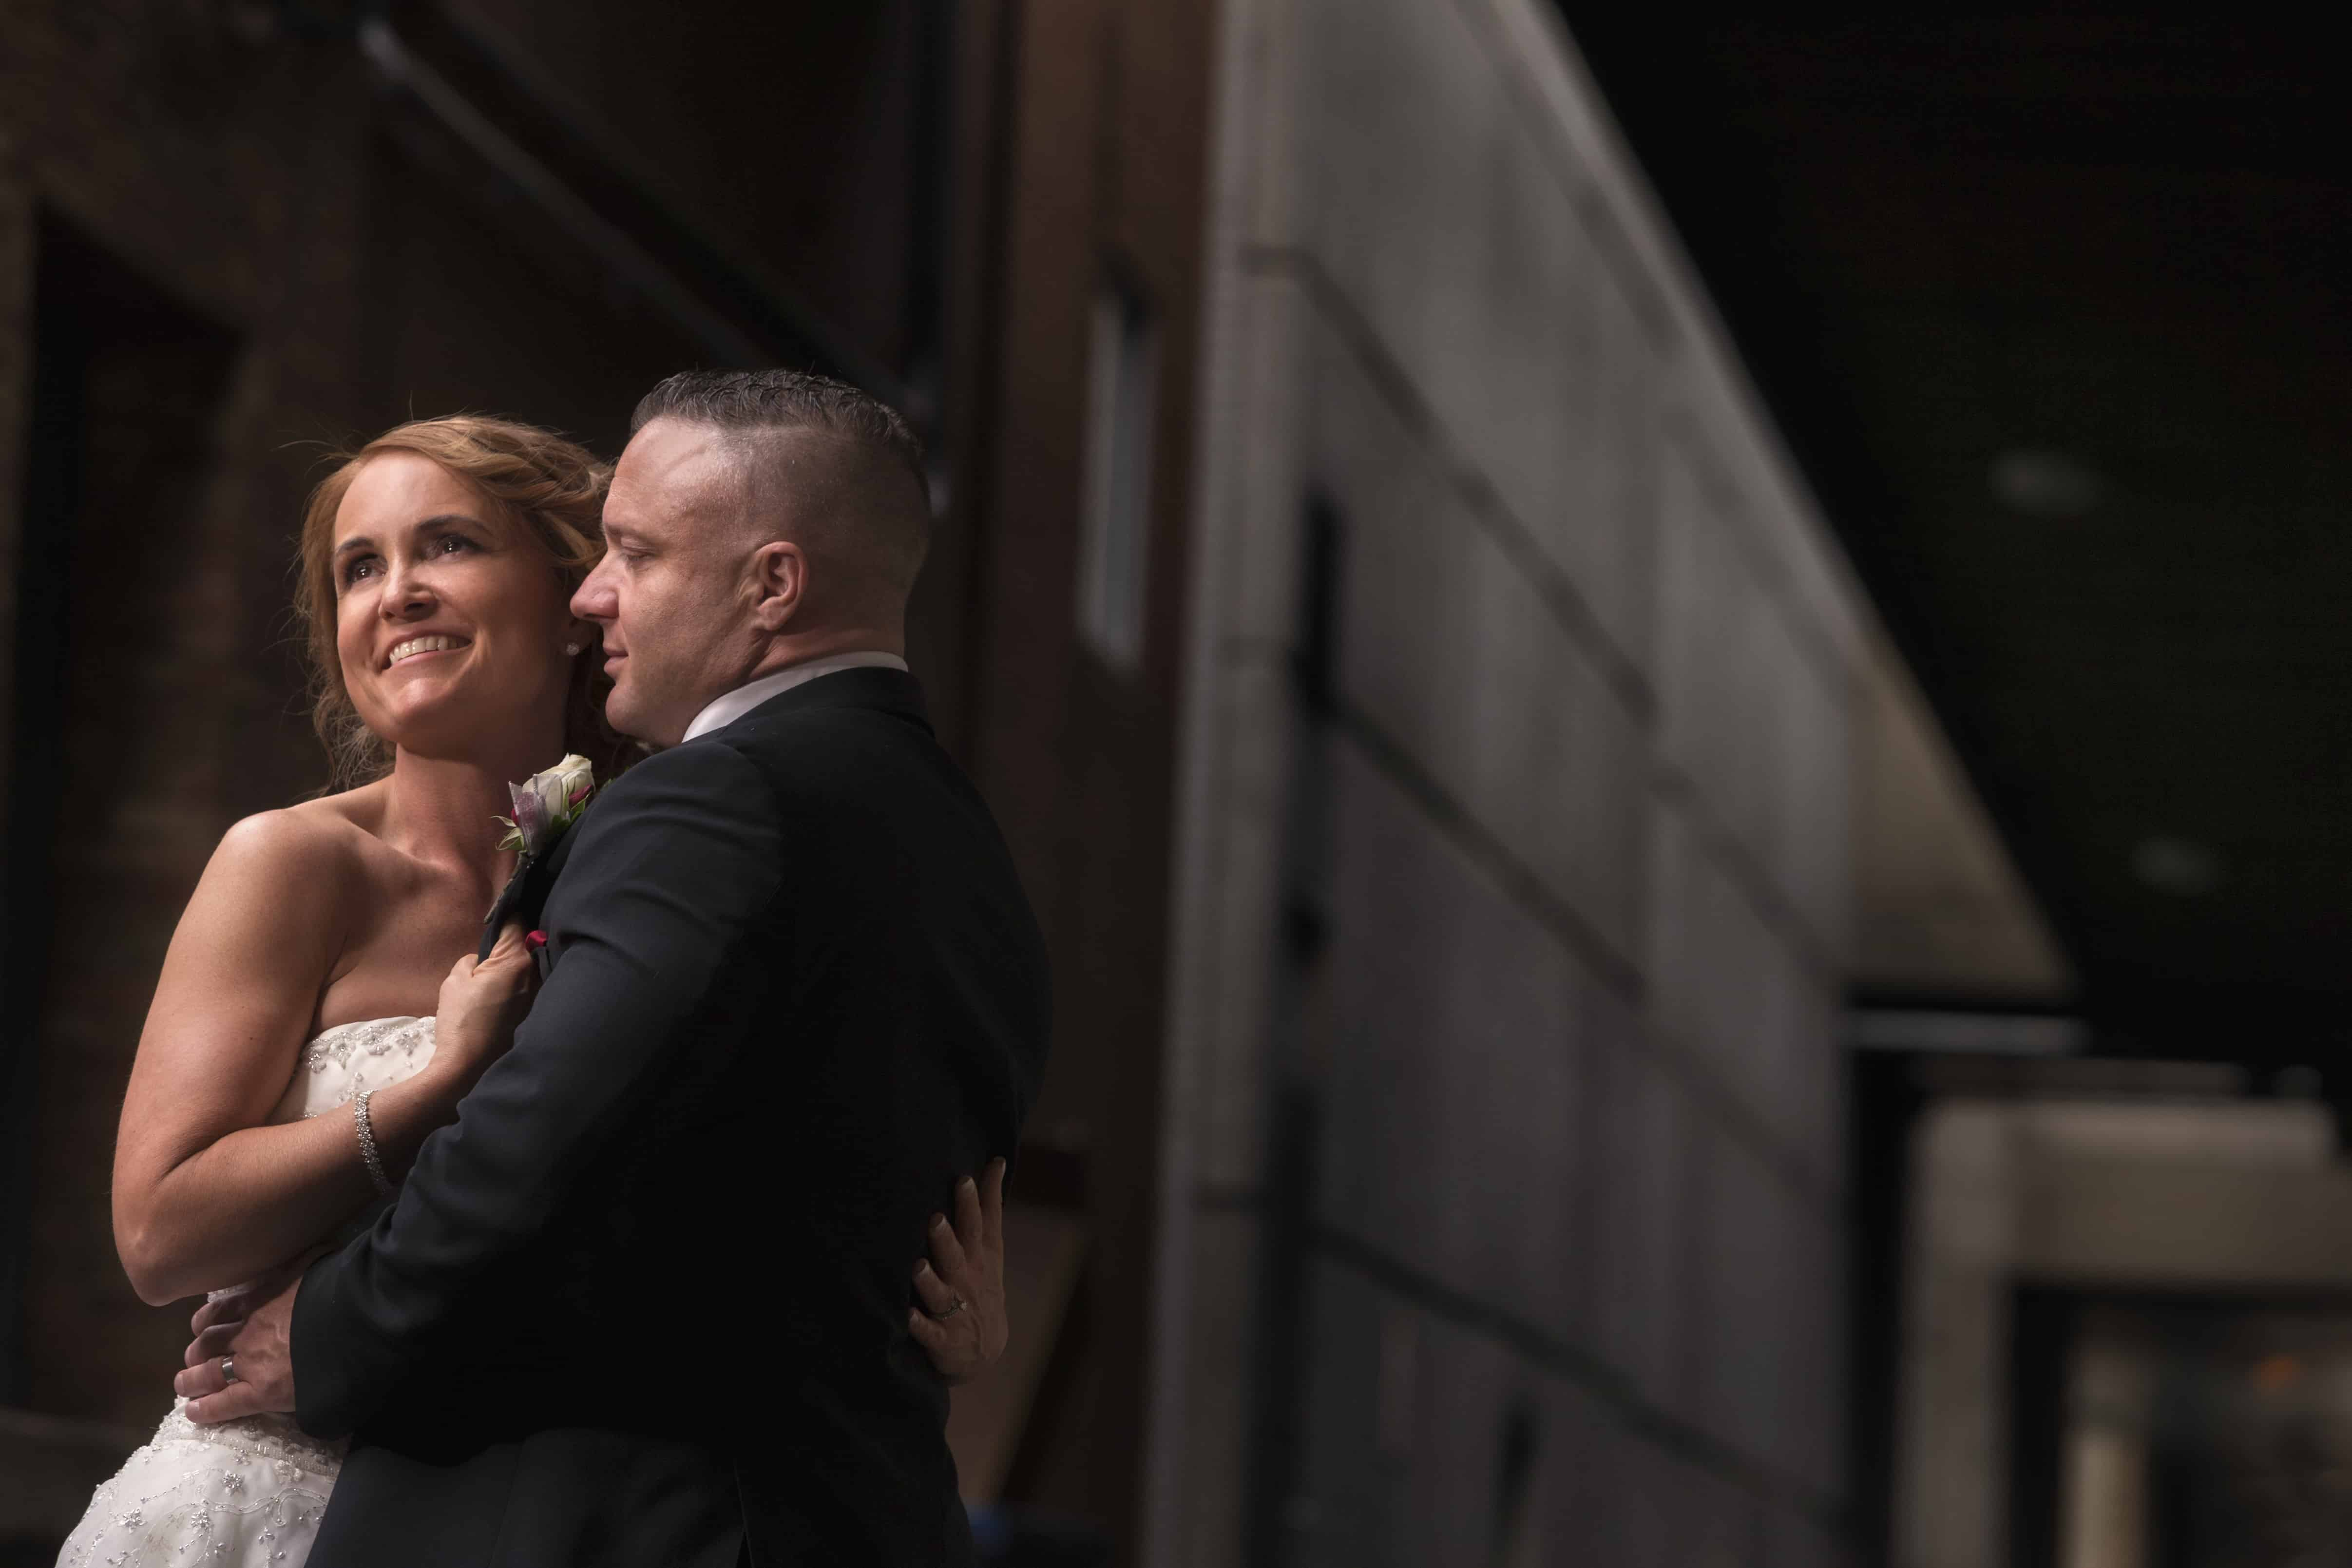 bride and groom picture in alleyway